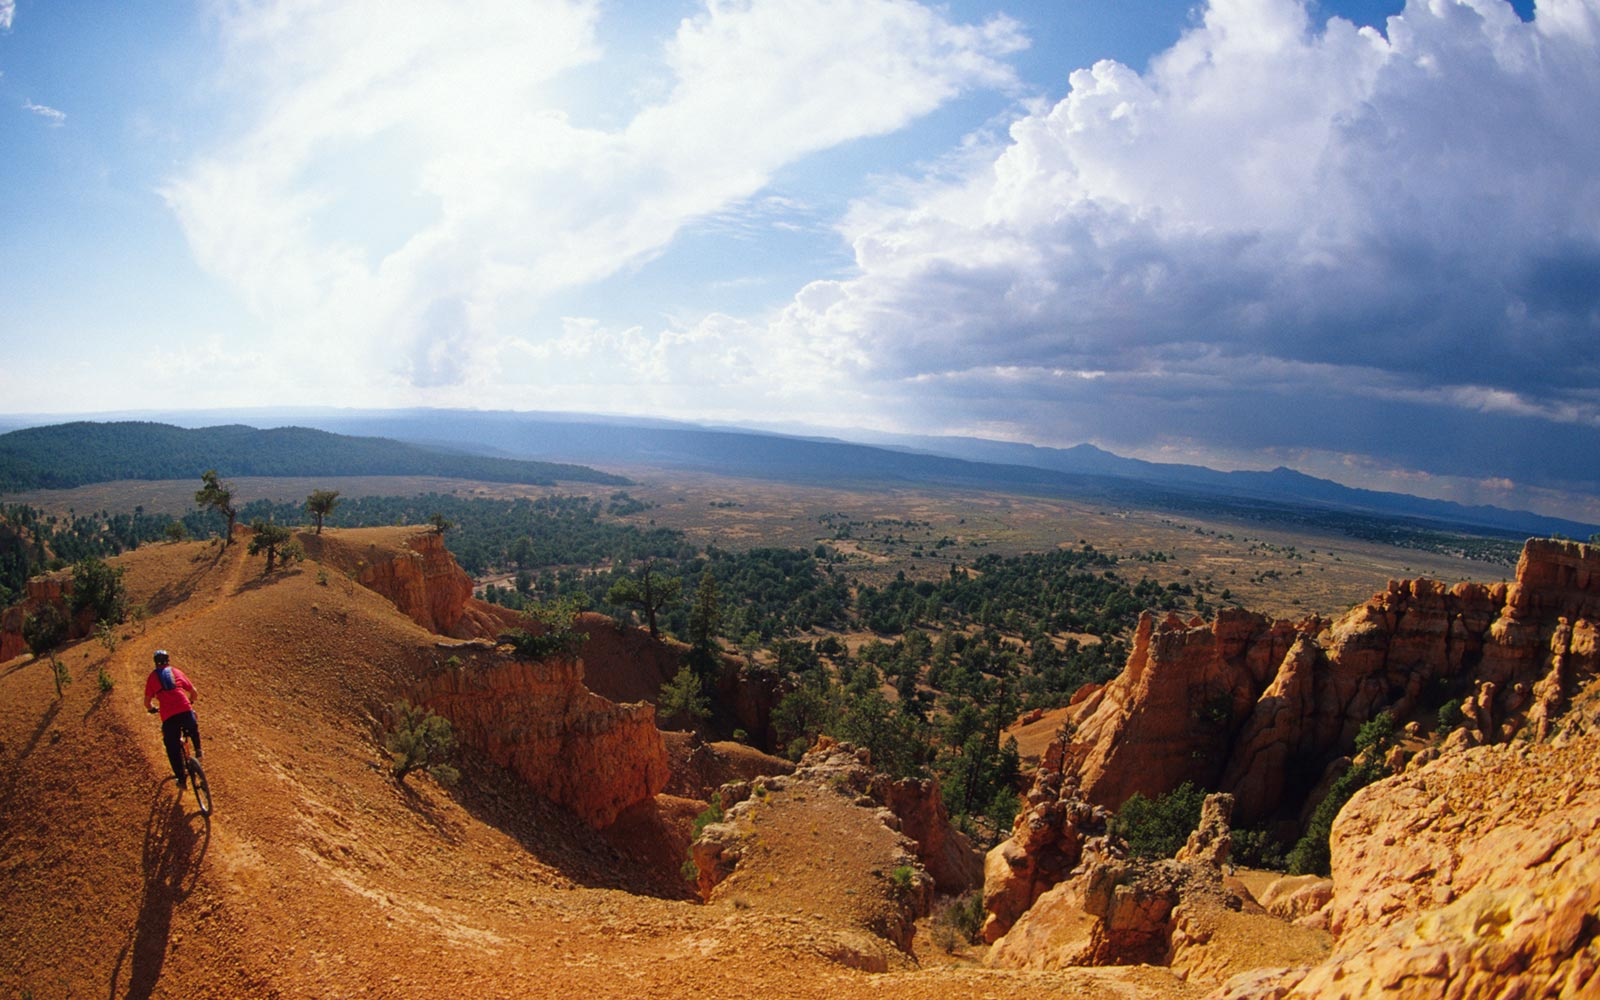 Mountain biking, Bryce Canyon National Park, Utah.